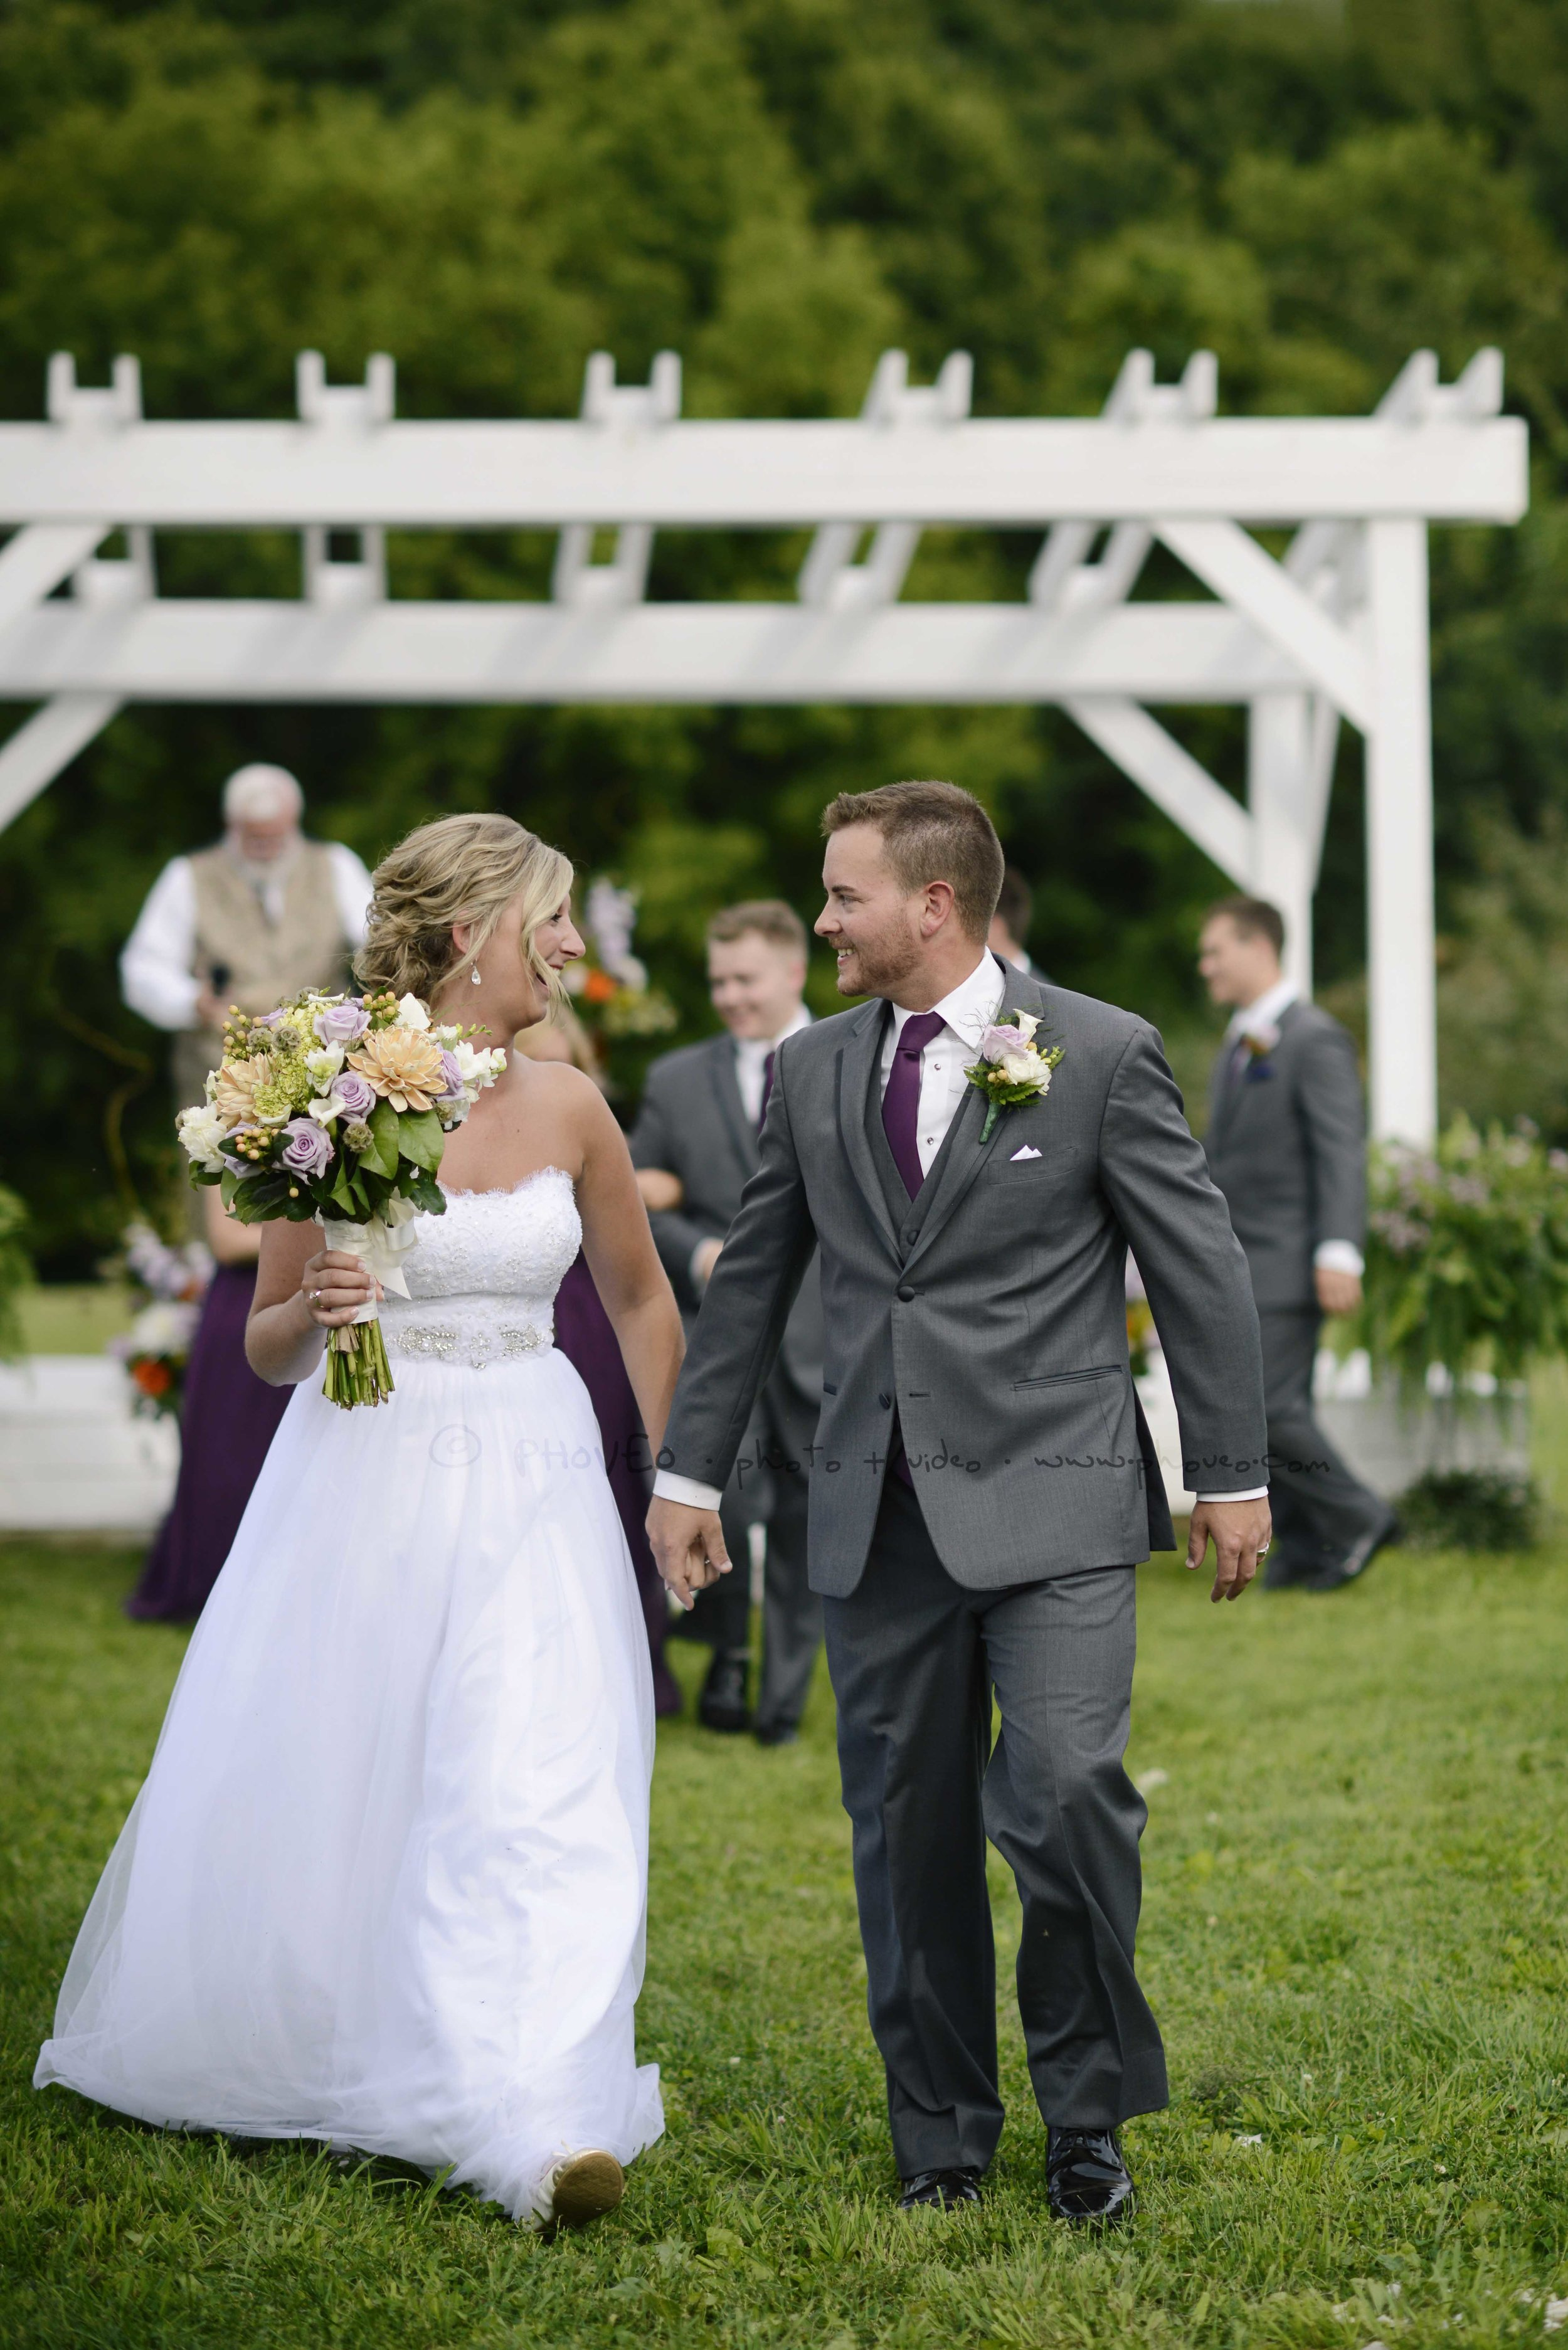 WM_20160826_Katelyn+Tony_51.jpg